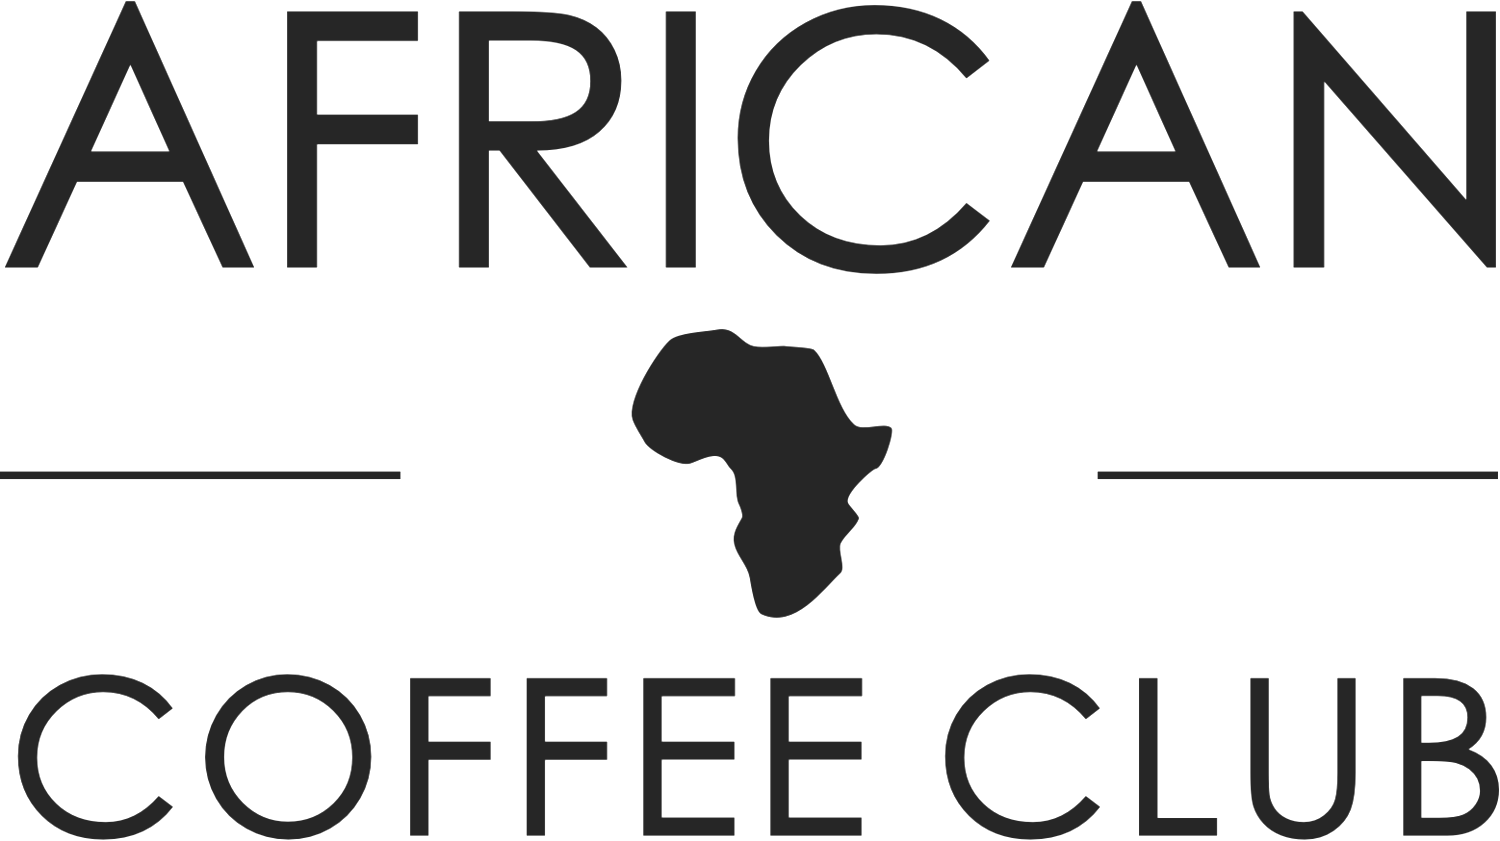 African Coffee Club